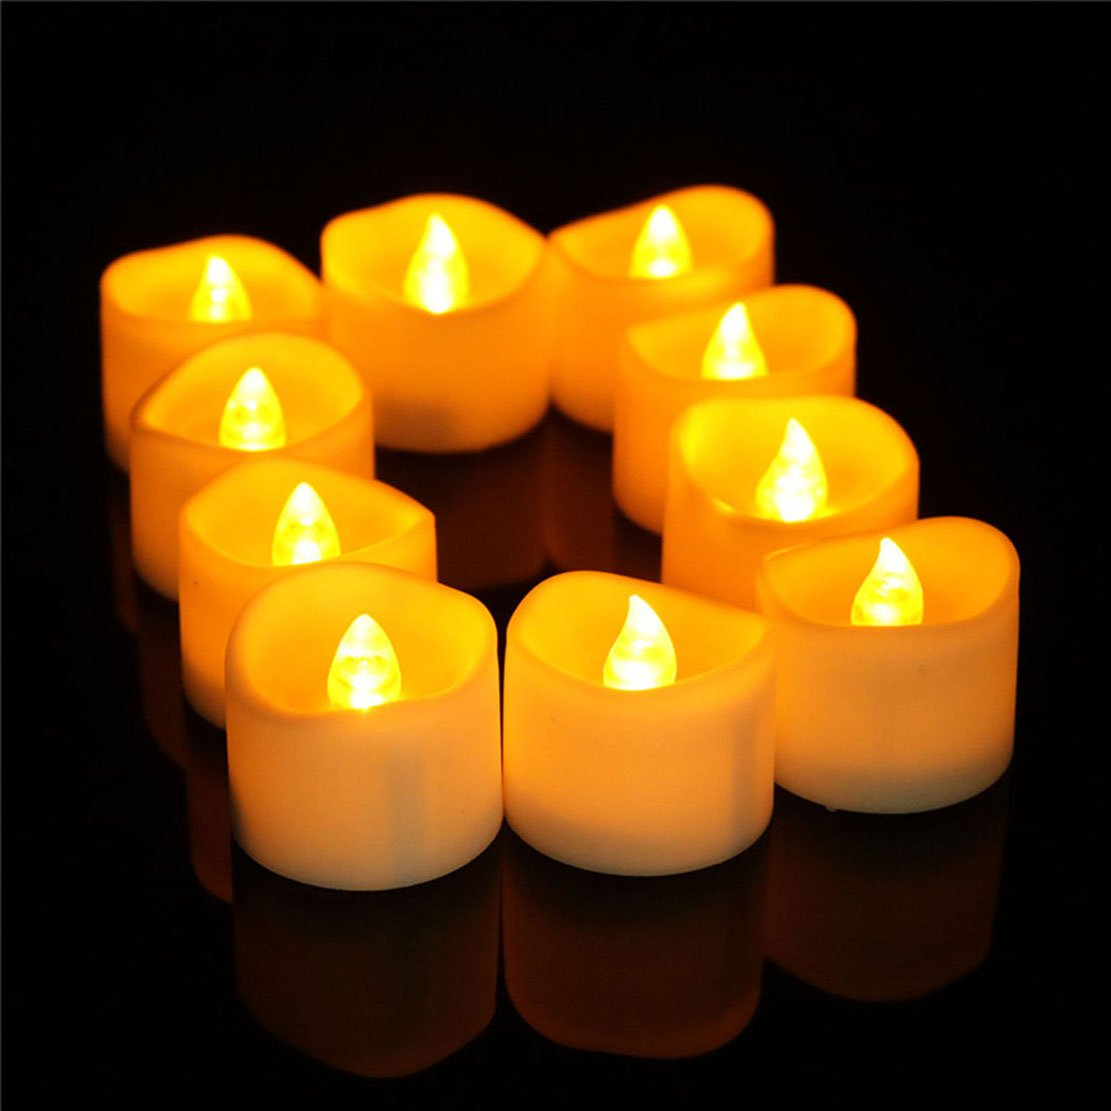 Allcute 48 Wavy Led Mini Candles Bulk 100, Flickering Flameless Tea Lights Battery Operated Amber Yellow for Church, Table, Xmas, Graves, Indoor Outdoor